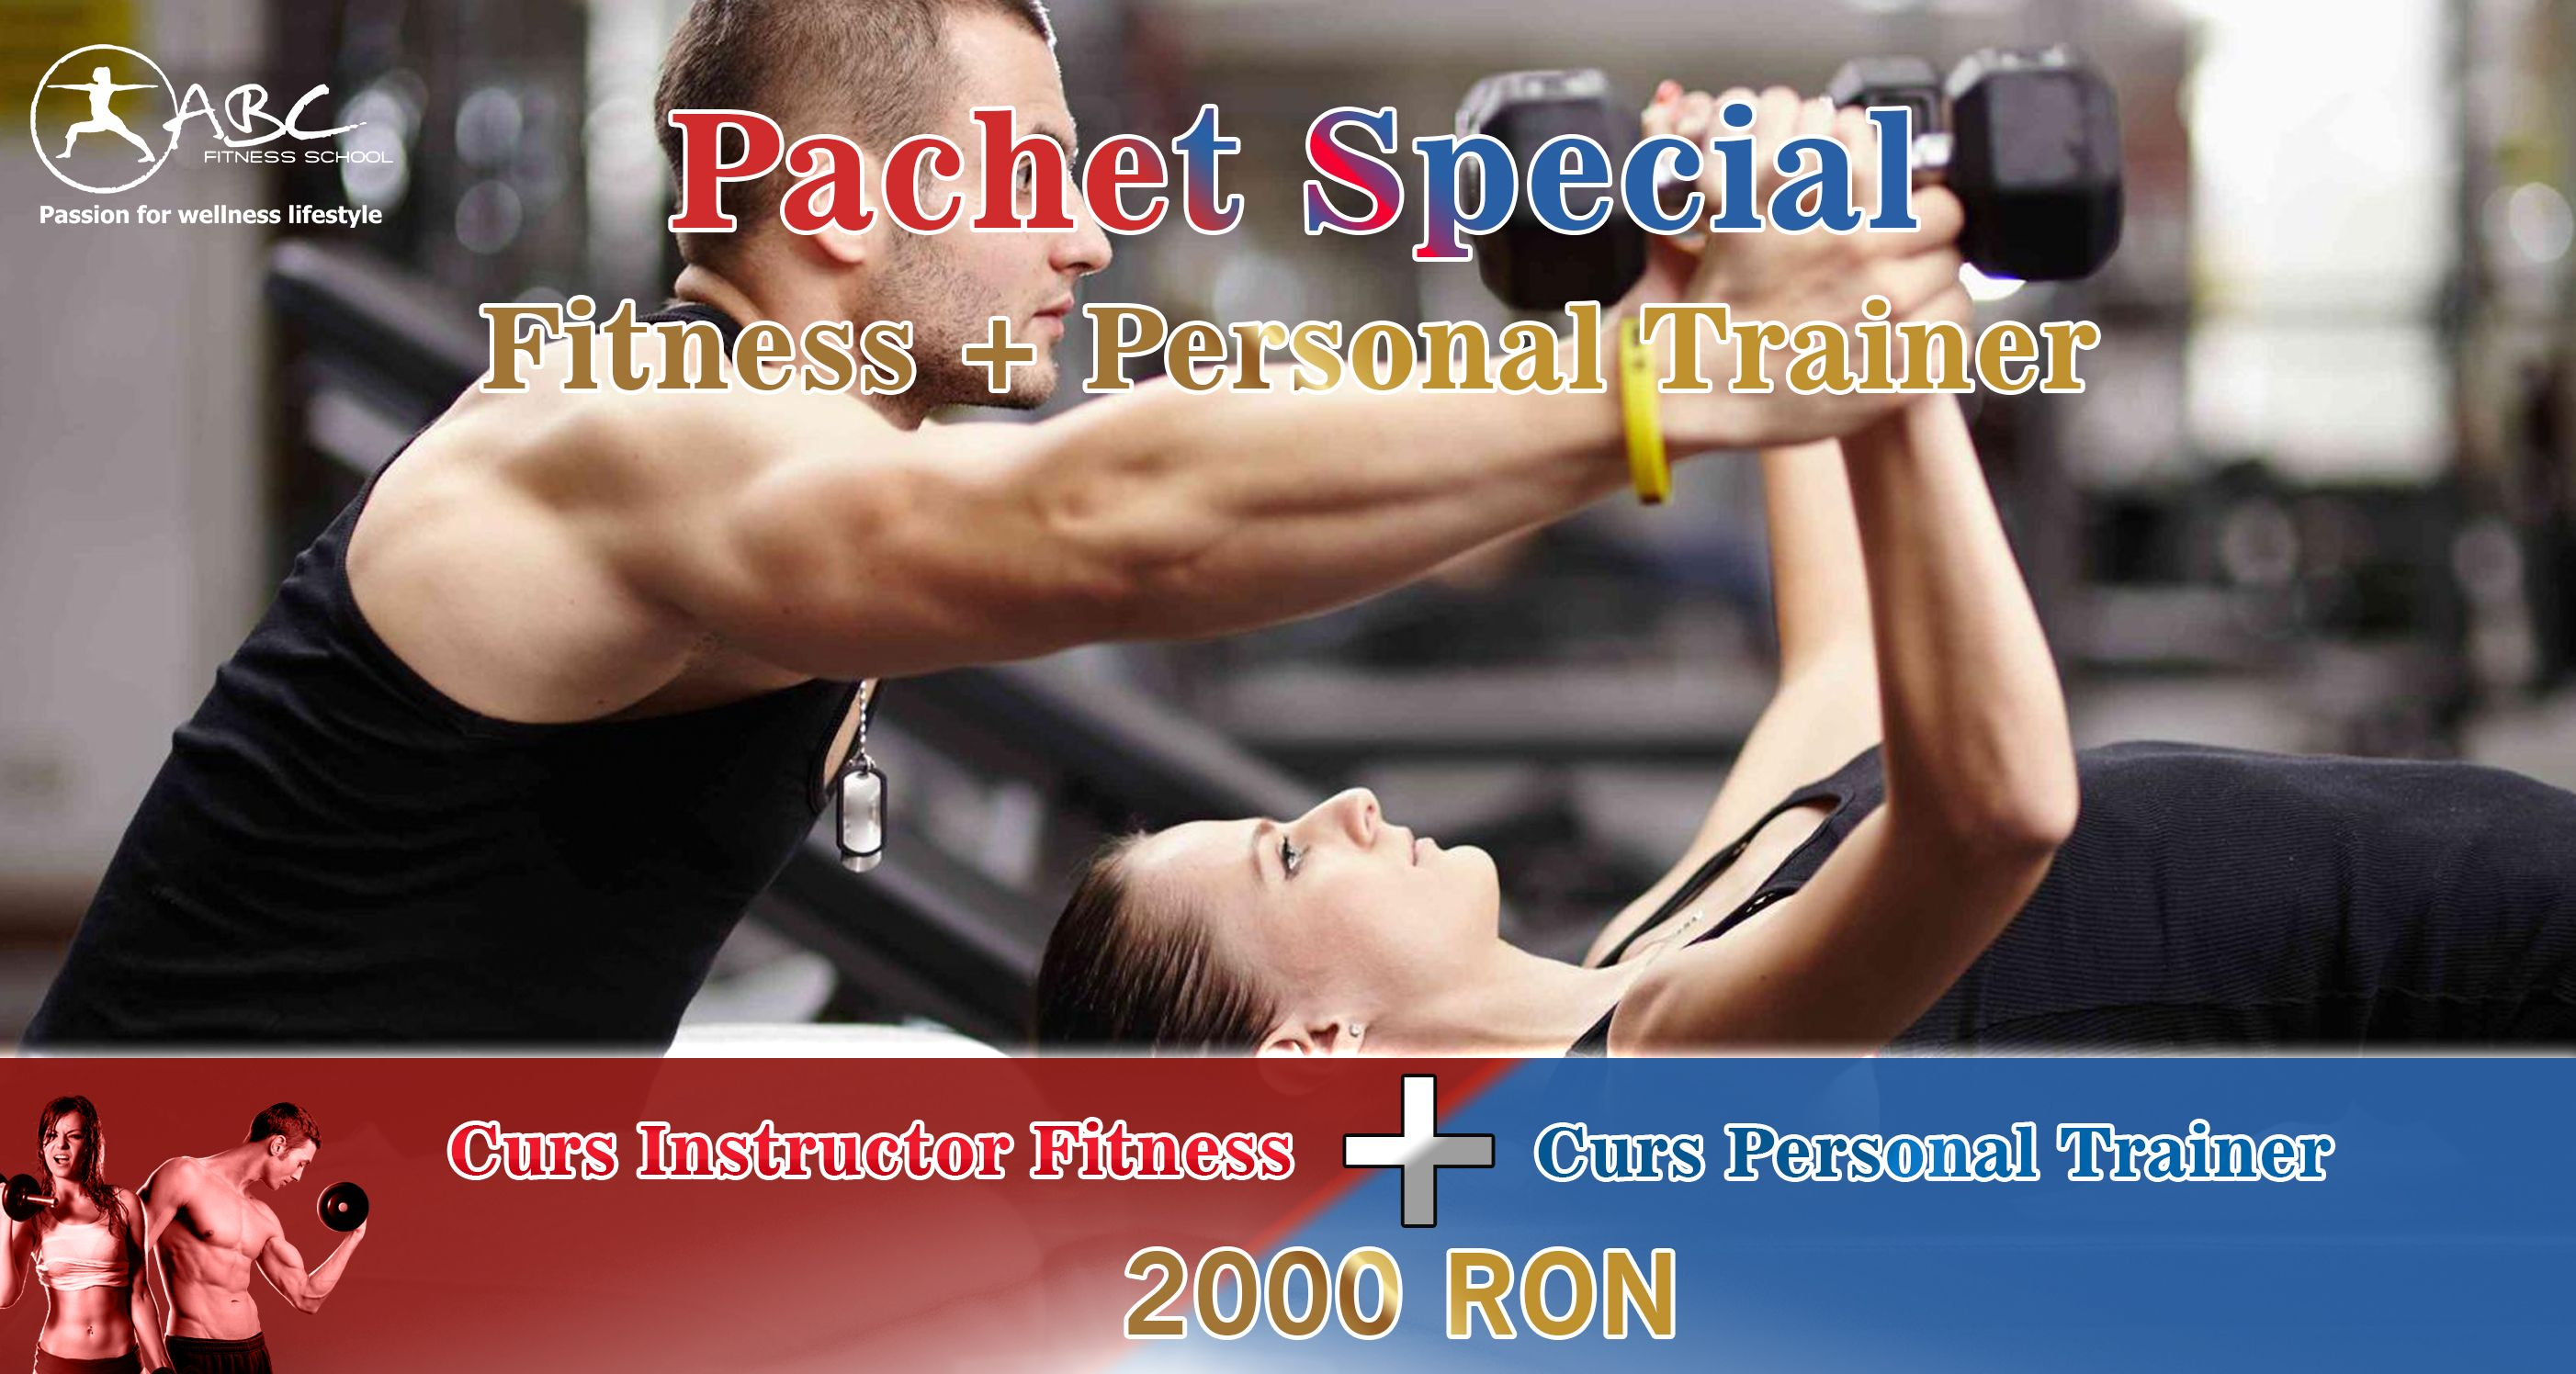 pachet curs instructor fitness si personal trainer